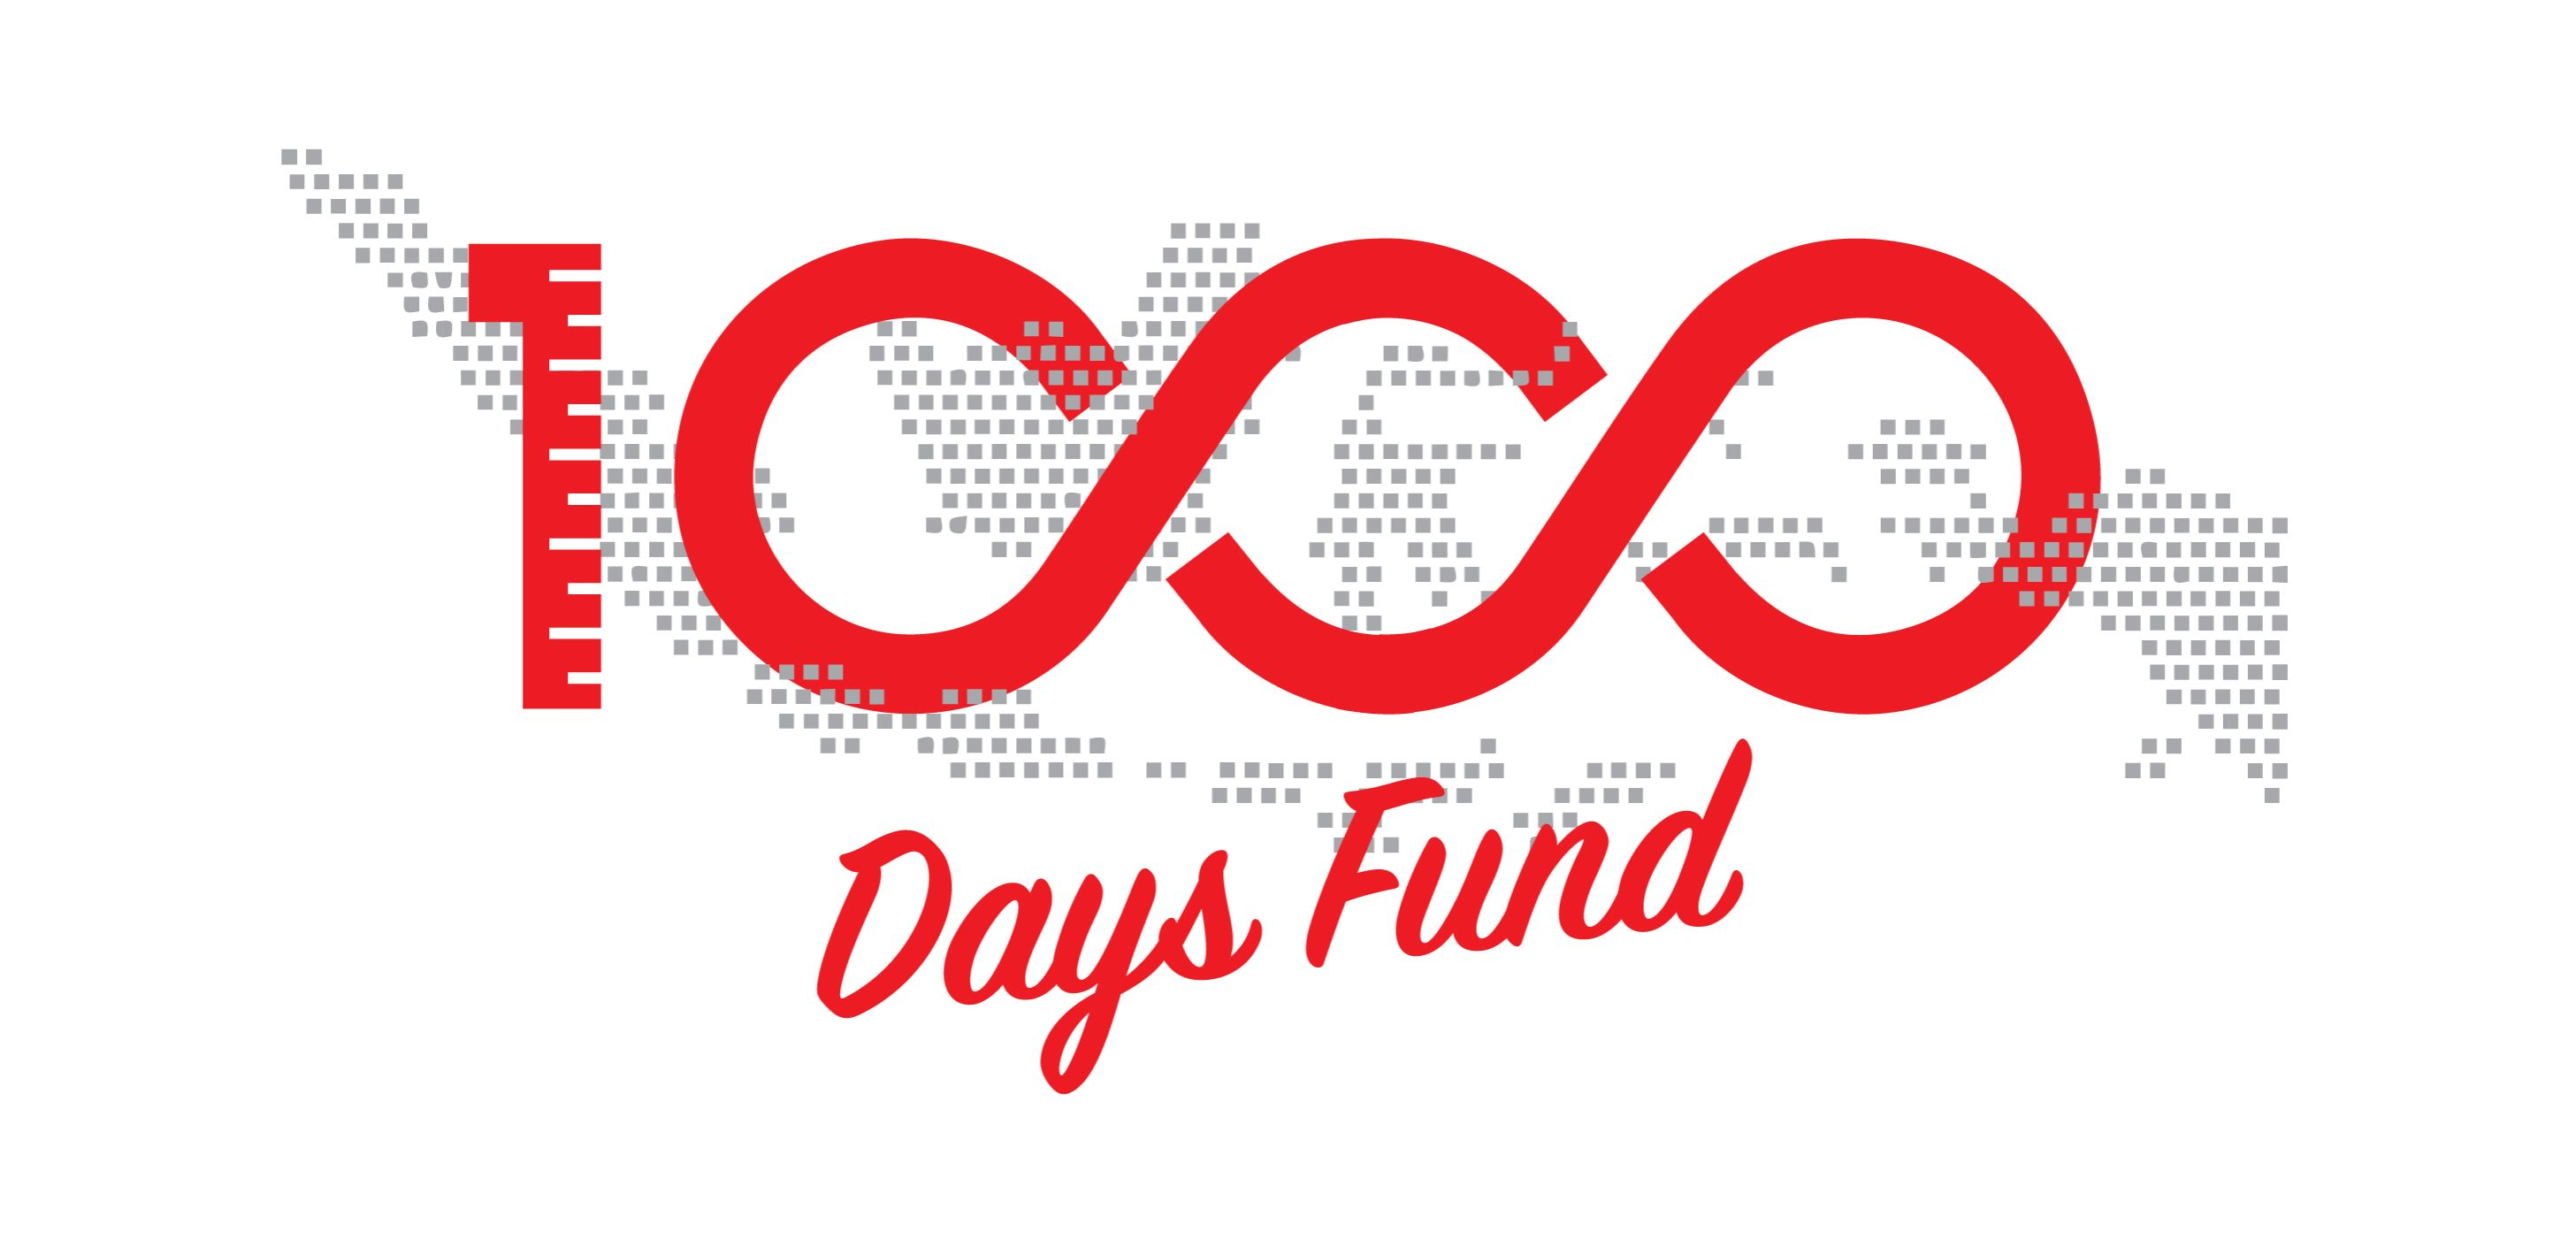 1000 Days Funds